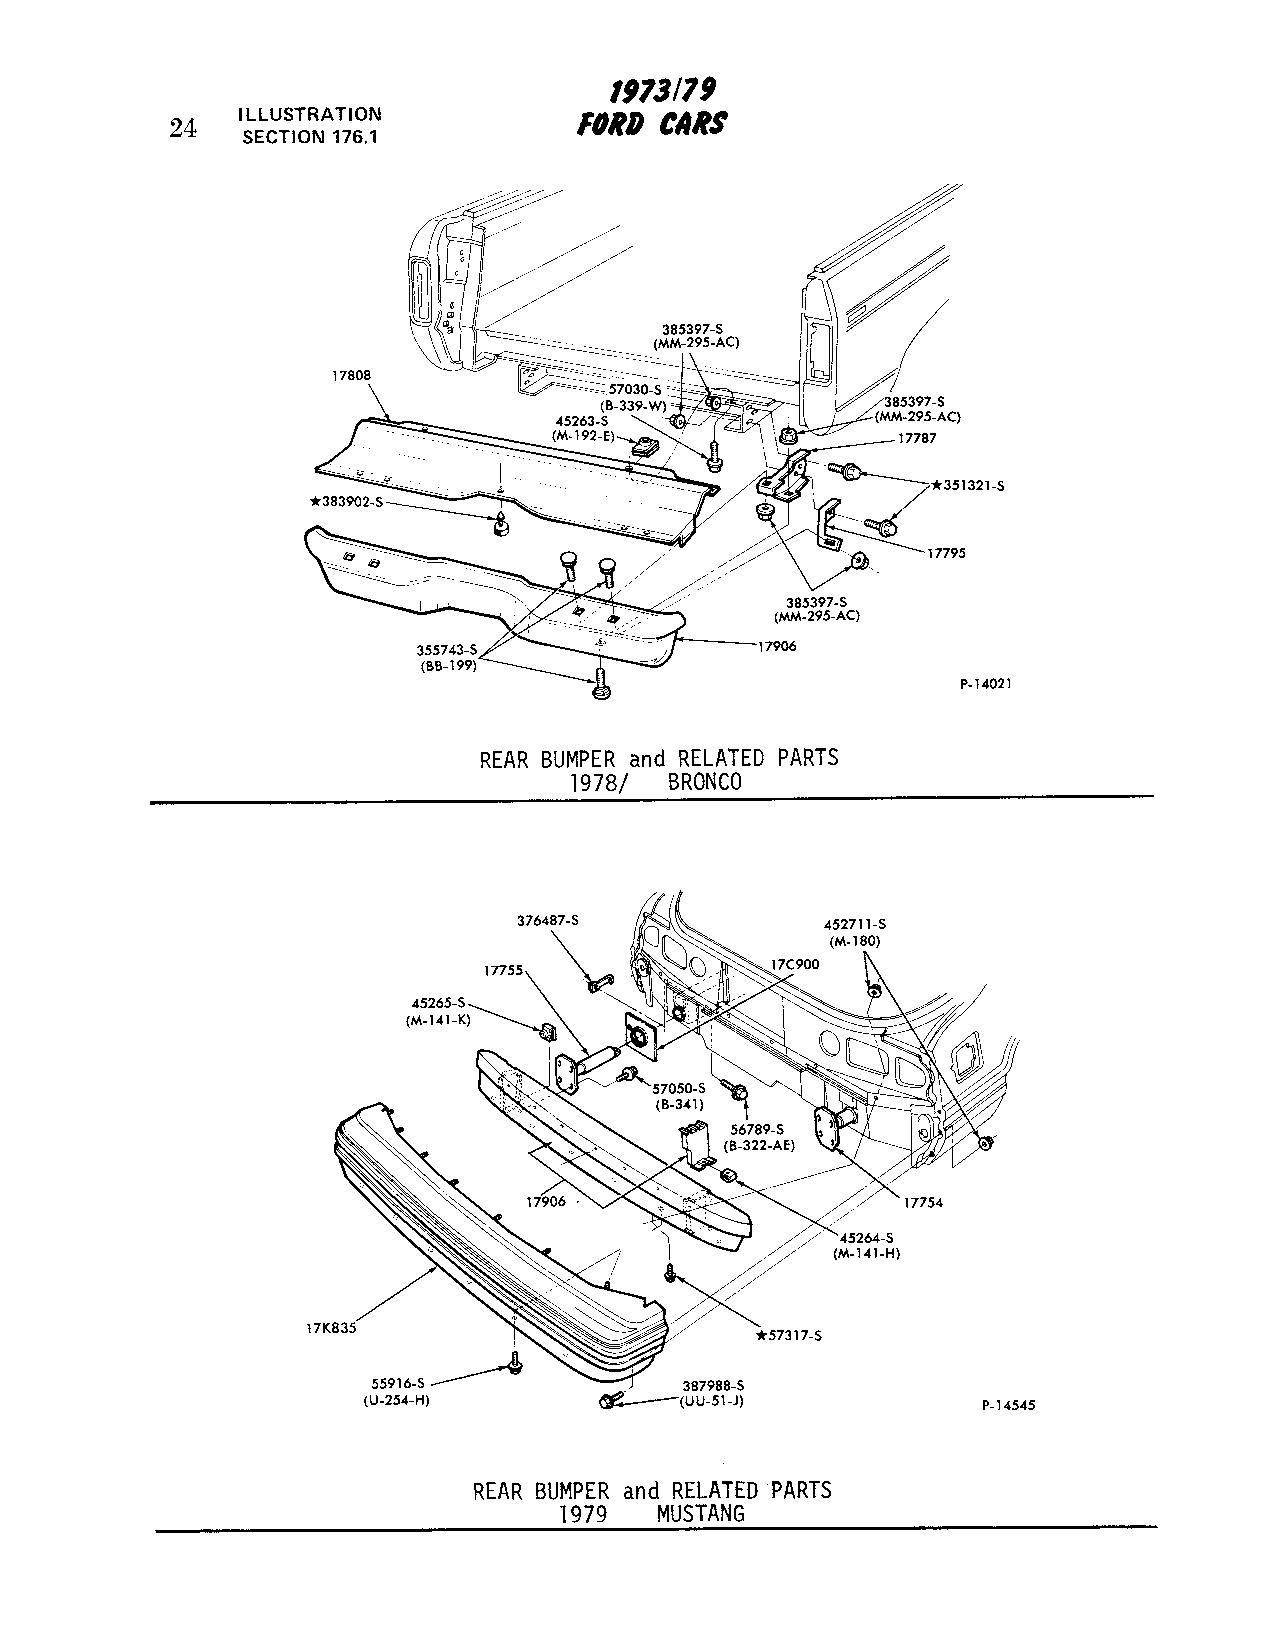 need pics of 78  79 bronco rear bumper brackets and frame